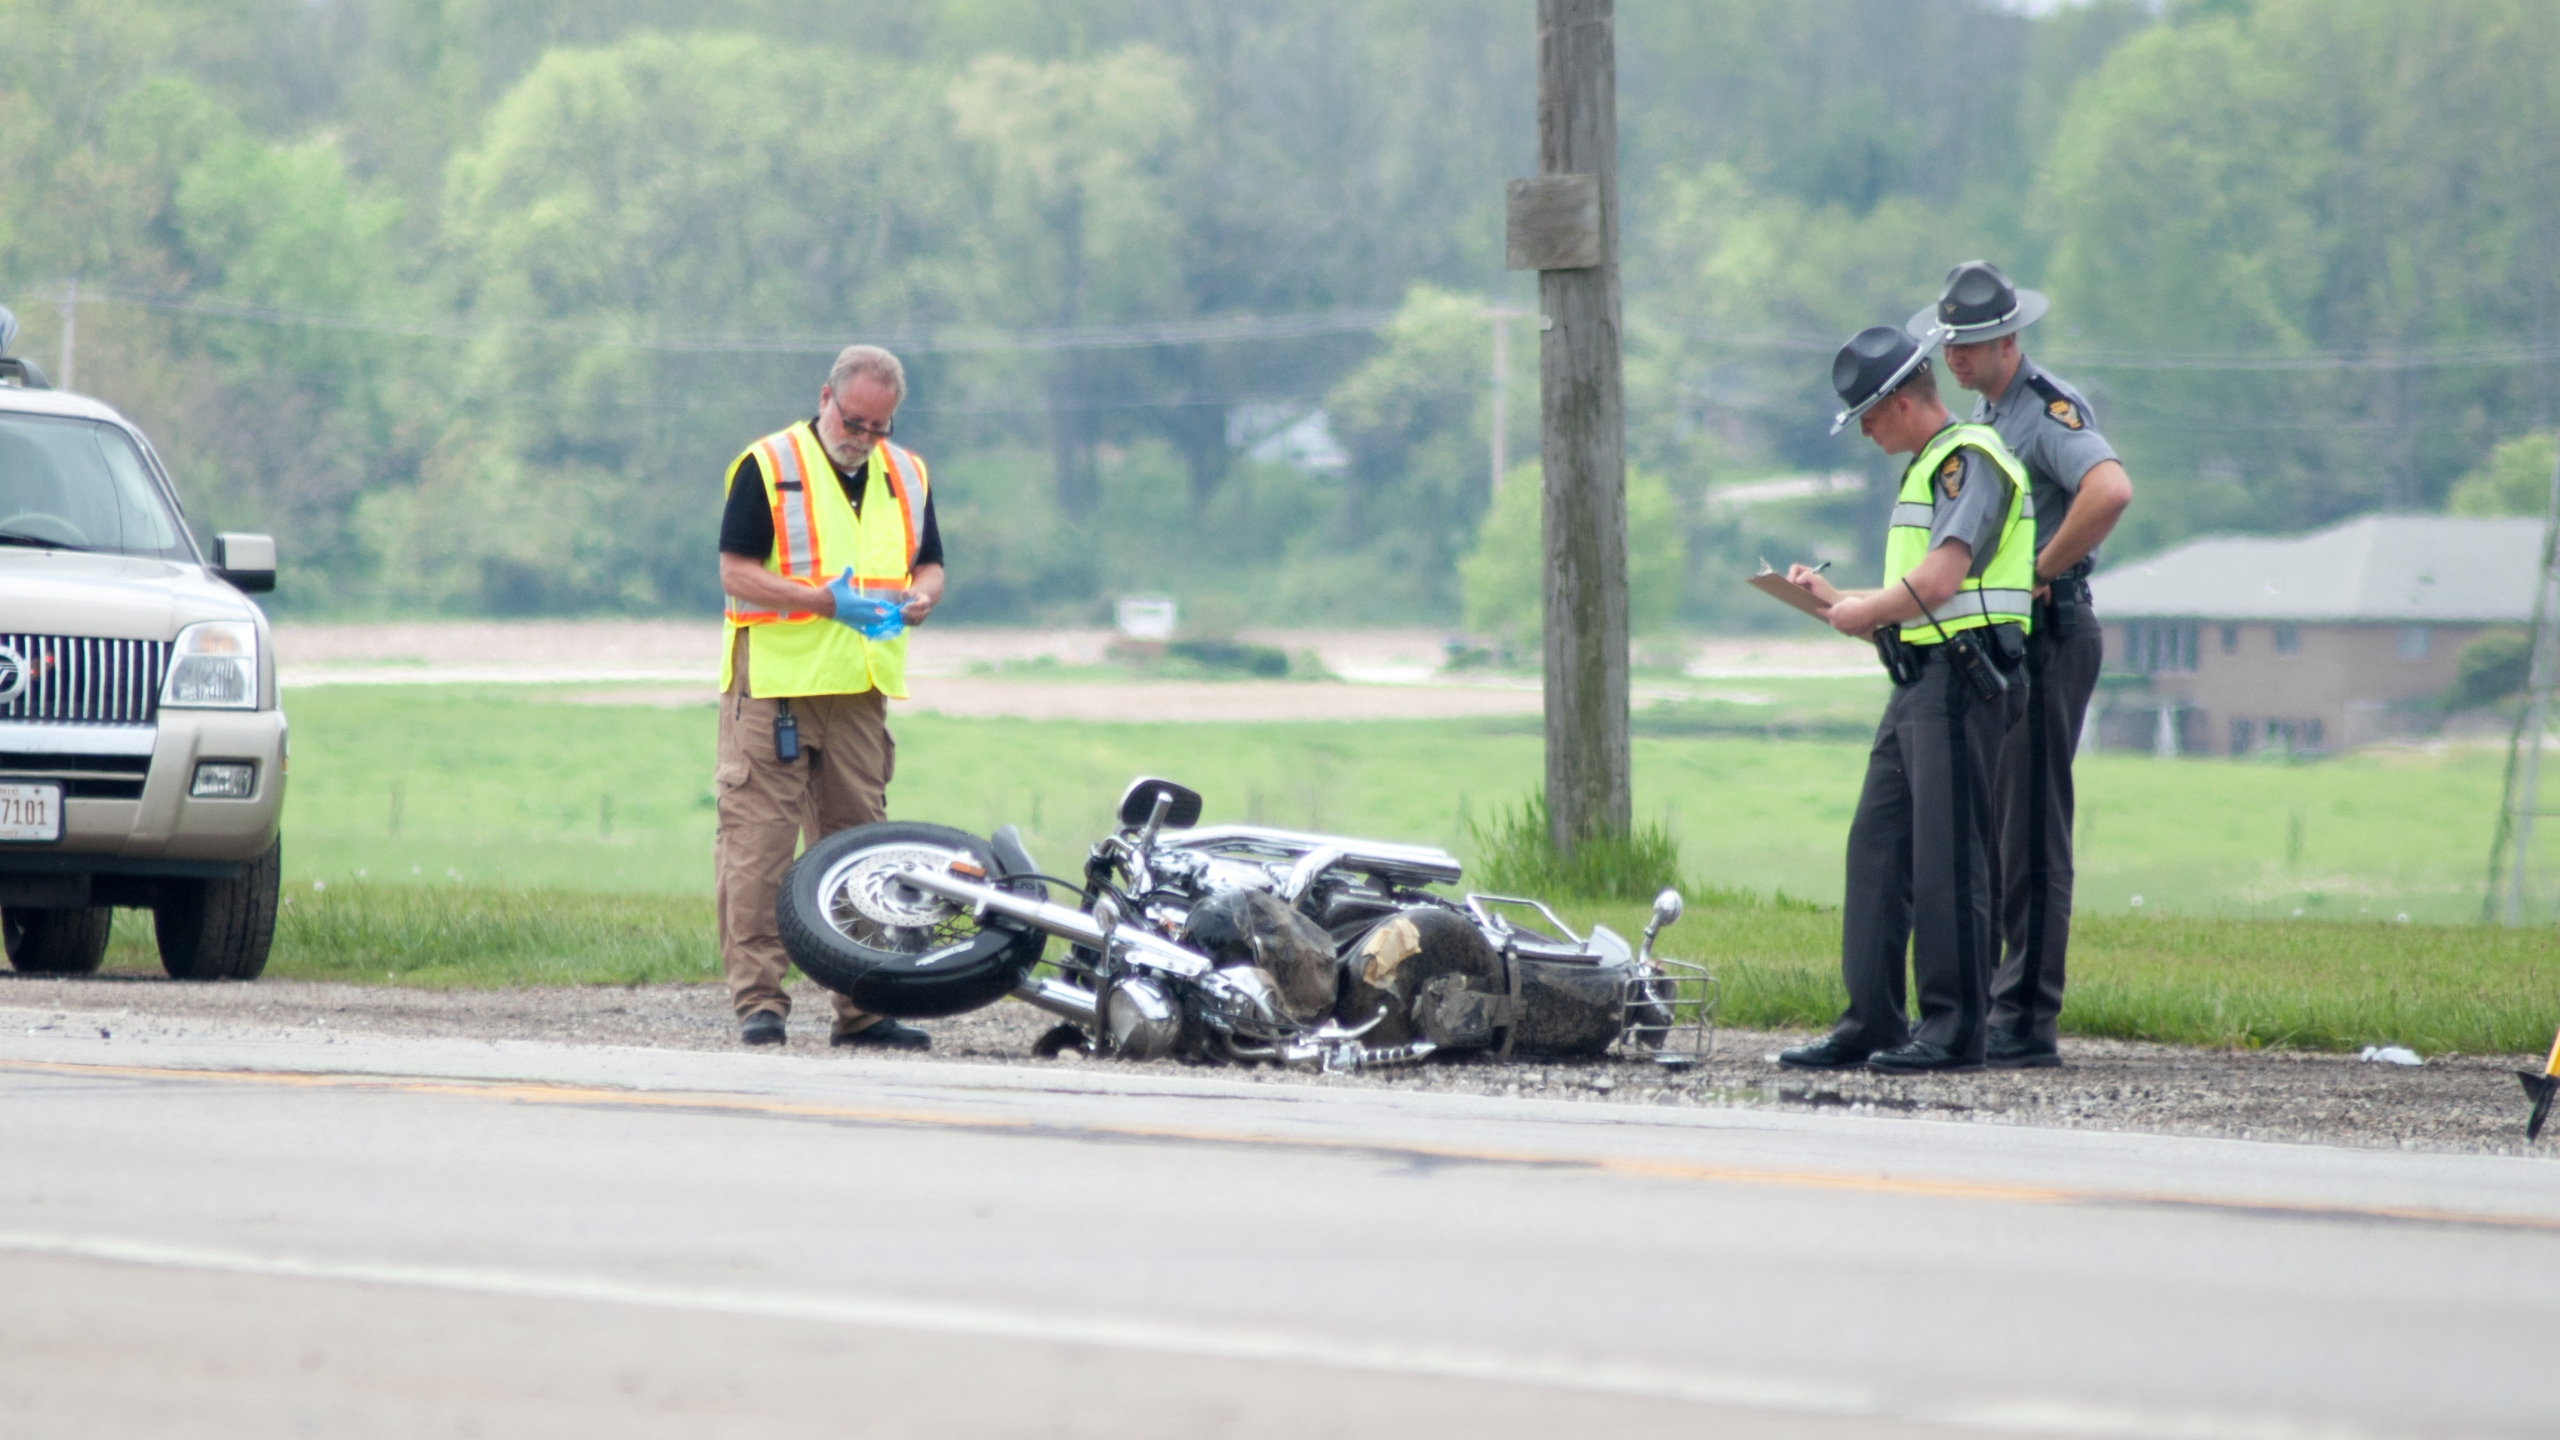 36-Year-Old Dies In New Carlisle Motorcycle Accident_159605